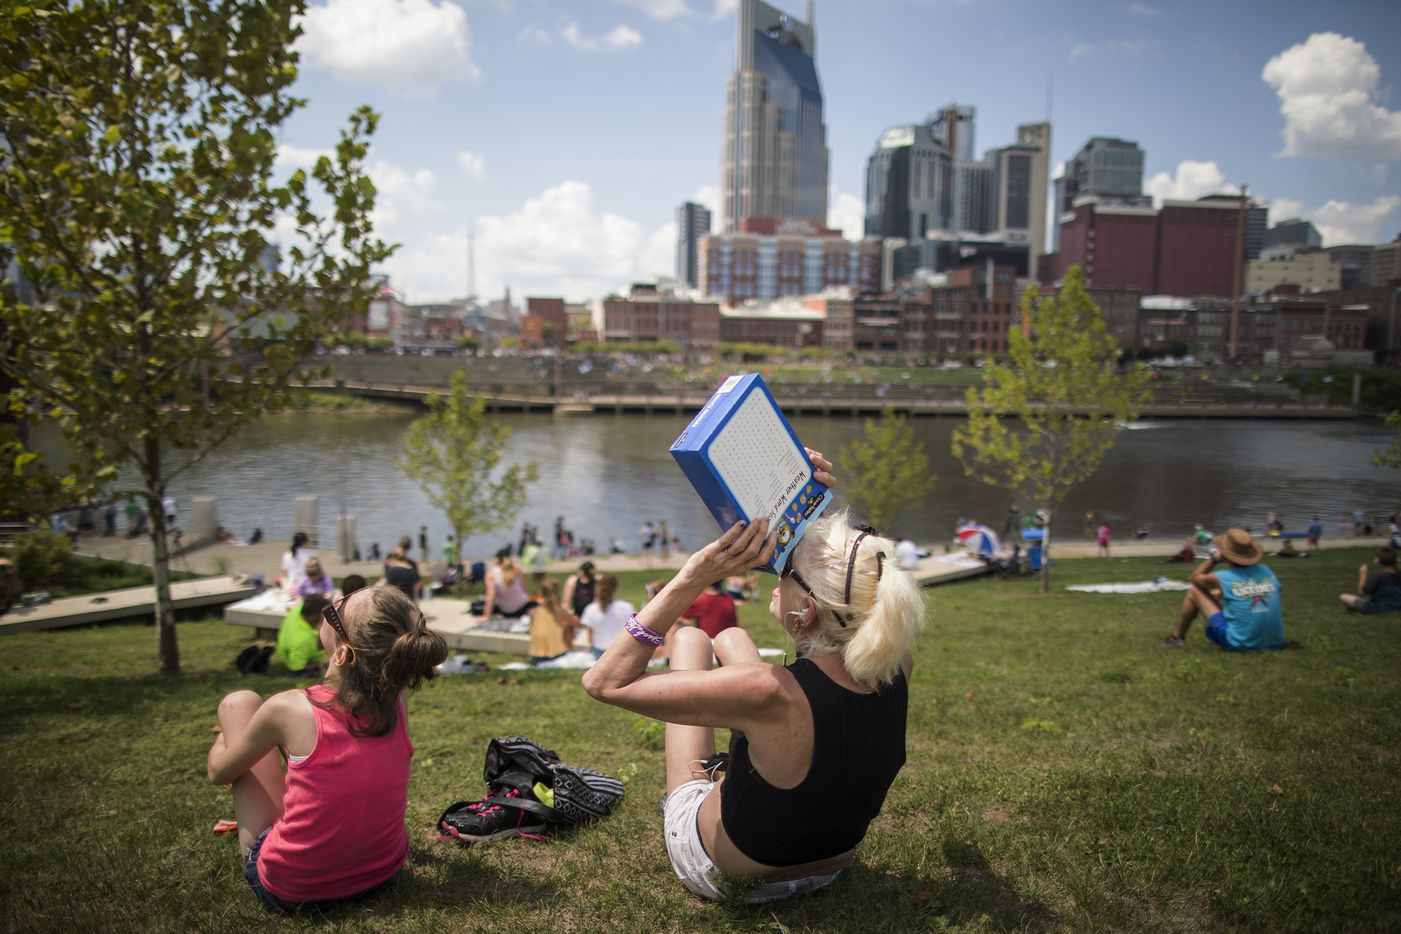 People watch the solar eclipse along the Cumberland River in Nashville, Tenn., which falls in the path of totality. For the first time since 1918, a solar eclipse traveled across the entire U.S. on Monday.